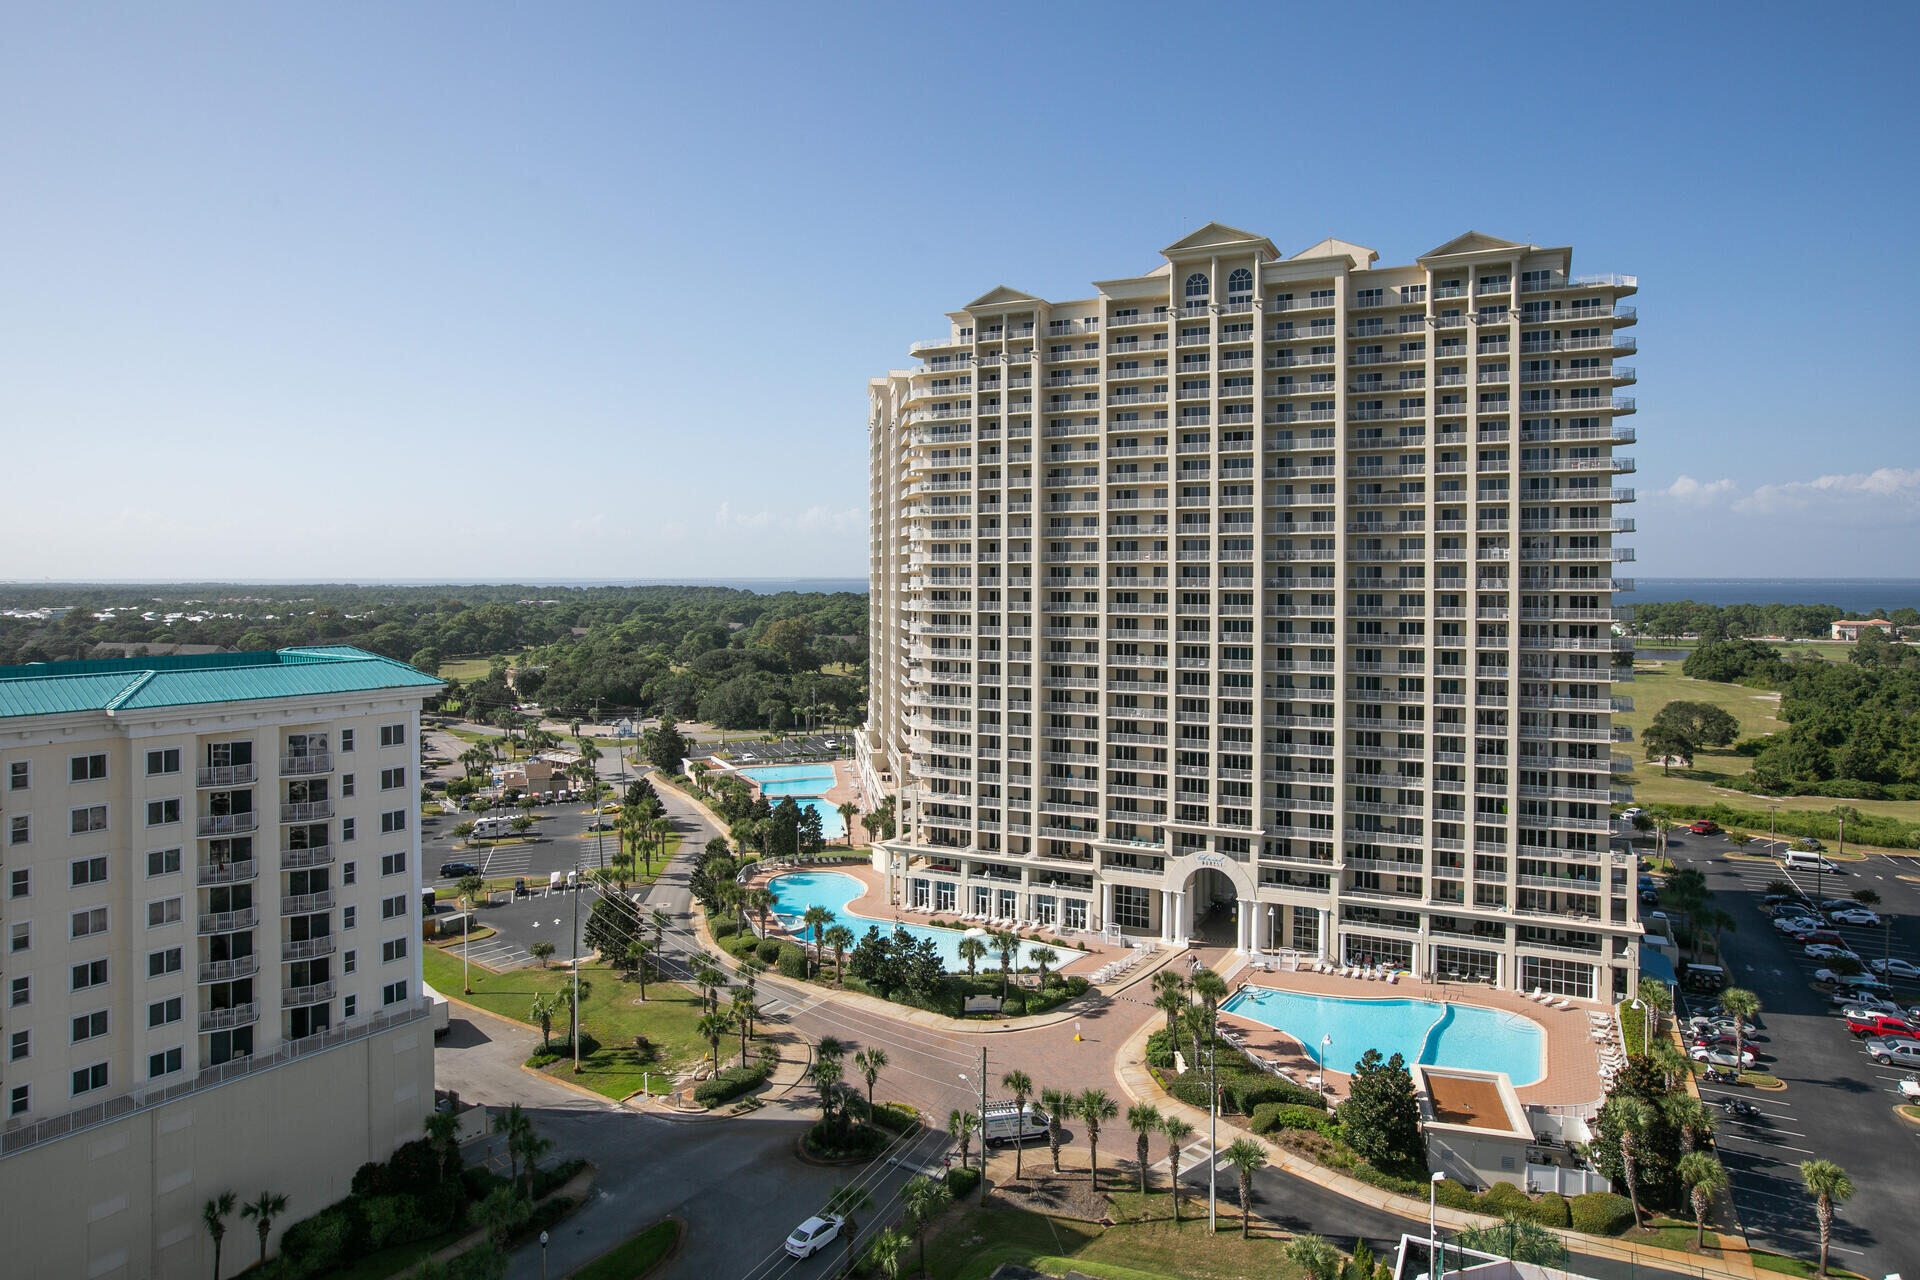 14th floor unit affords you wonderful views of the Gulf of Mexico!   2 bedroom/2 bath unit, with tile and laminate flooring throughout, which works great for a beach property!  Granite and quartz countertops in kitchen/baths, stainless appliances in kitchen.  This property is completely turnkey and is being sold fully furnished with just a few minor exclusions.  Please reach out today to arrange your private showing!